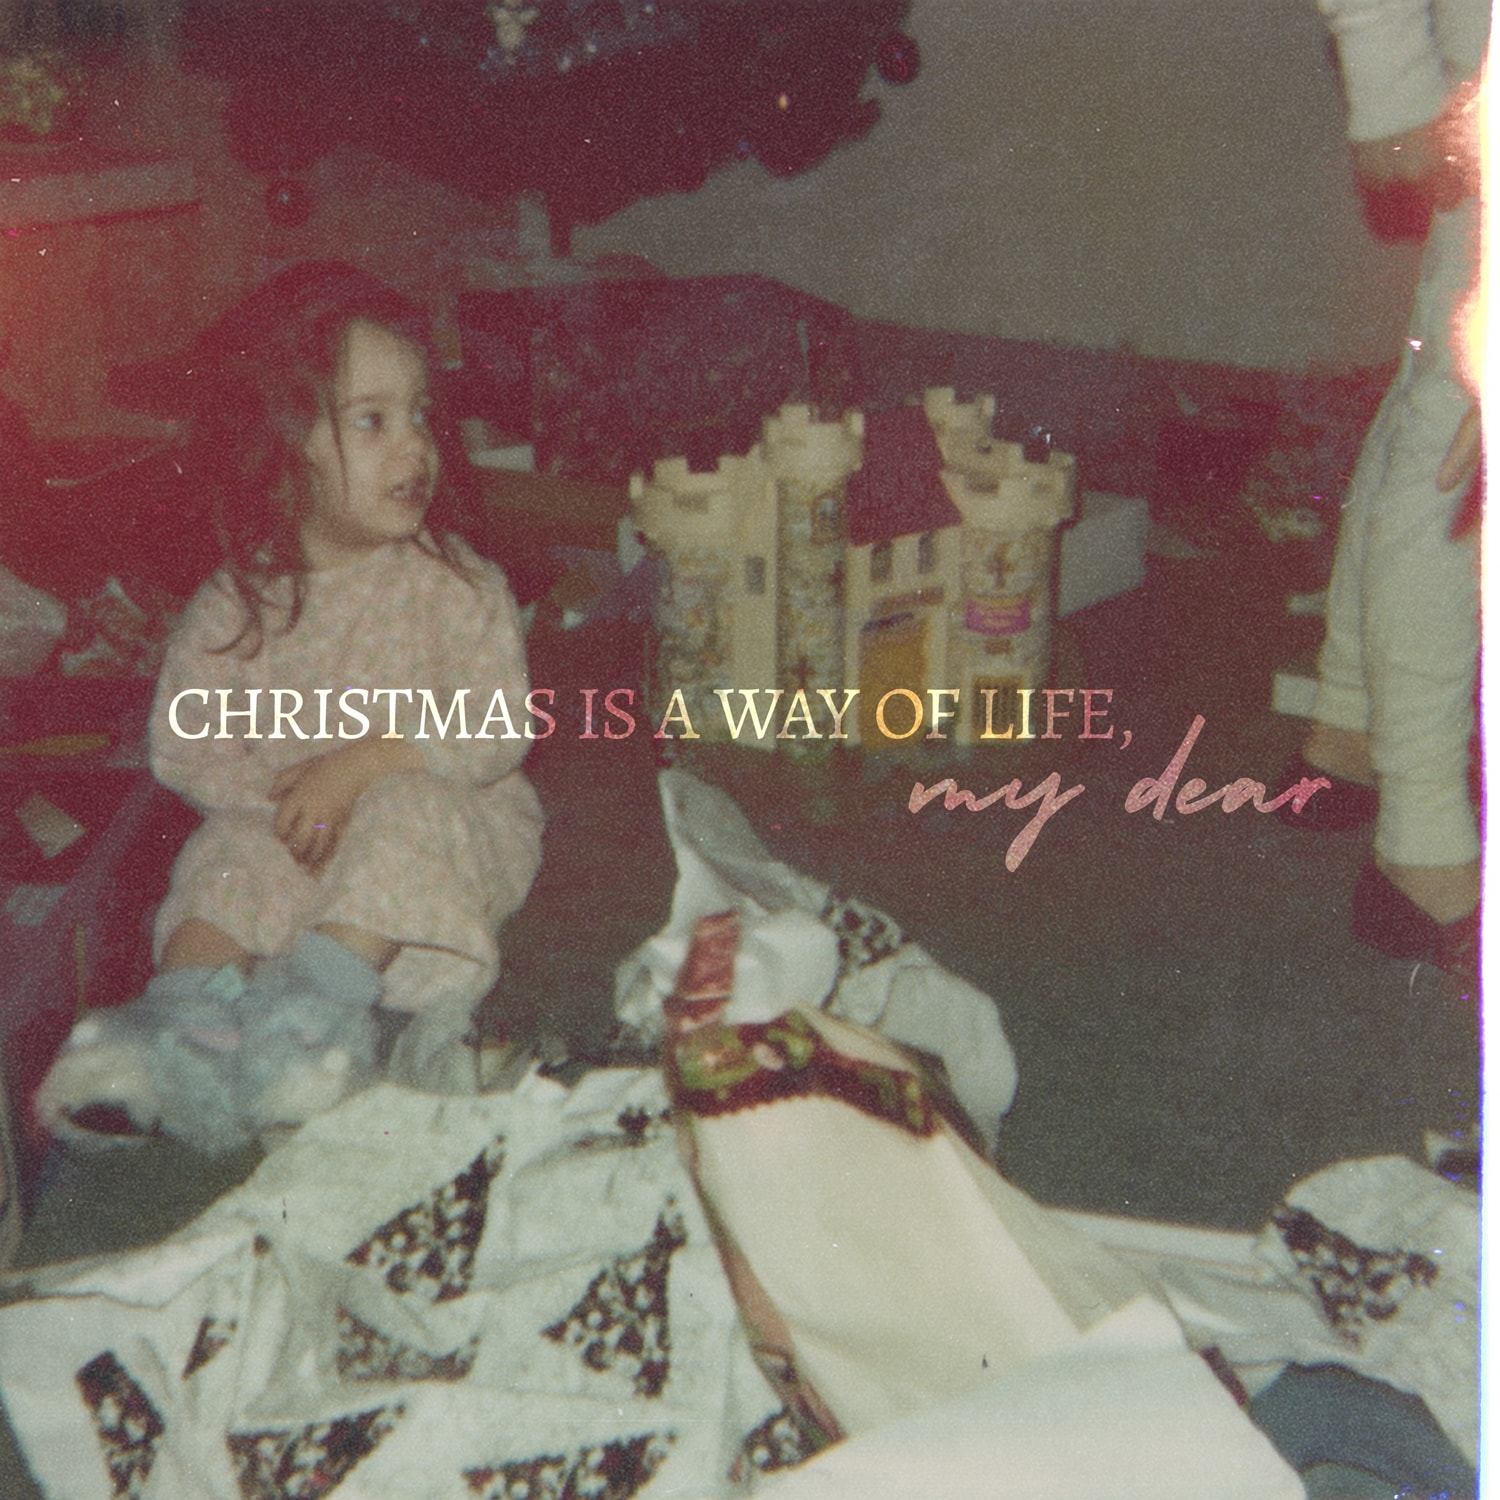 Christmas is a way of life, my dear - album artwork